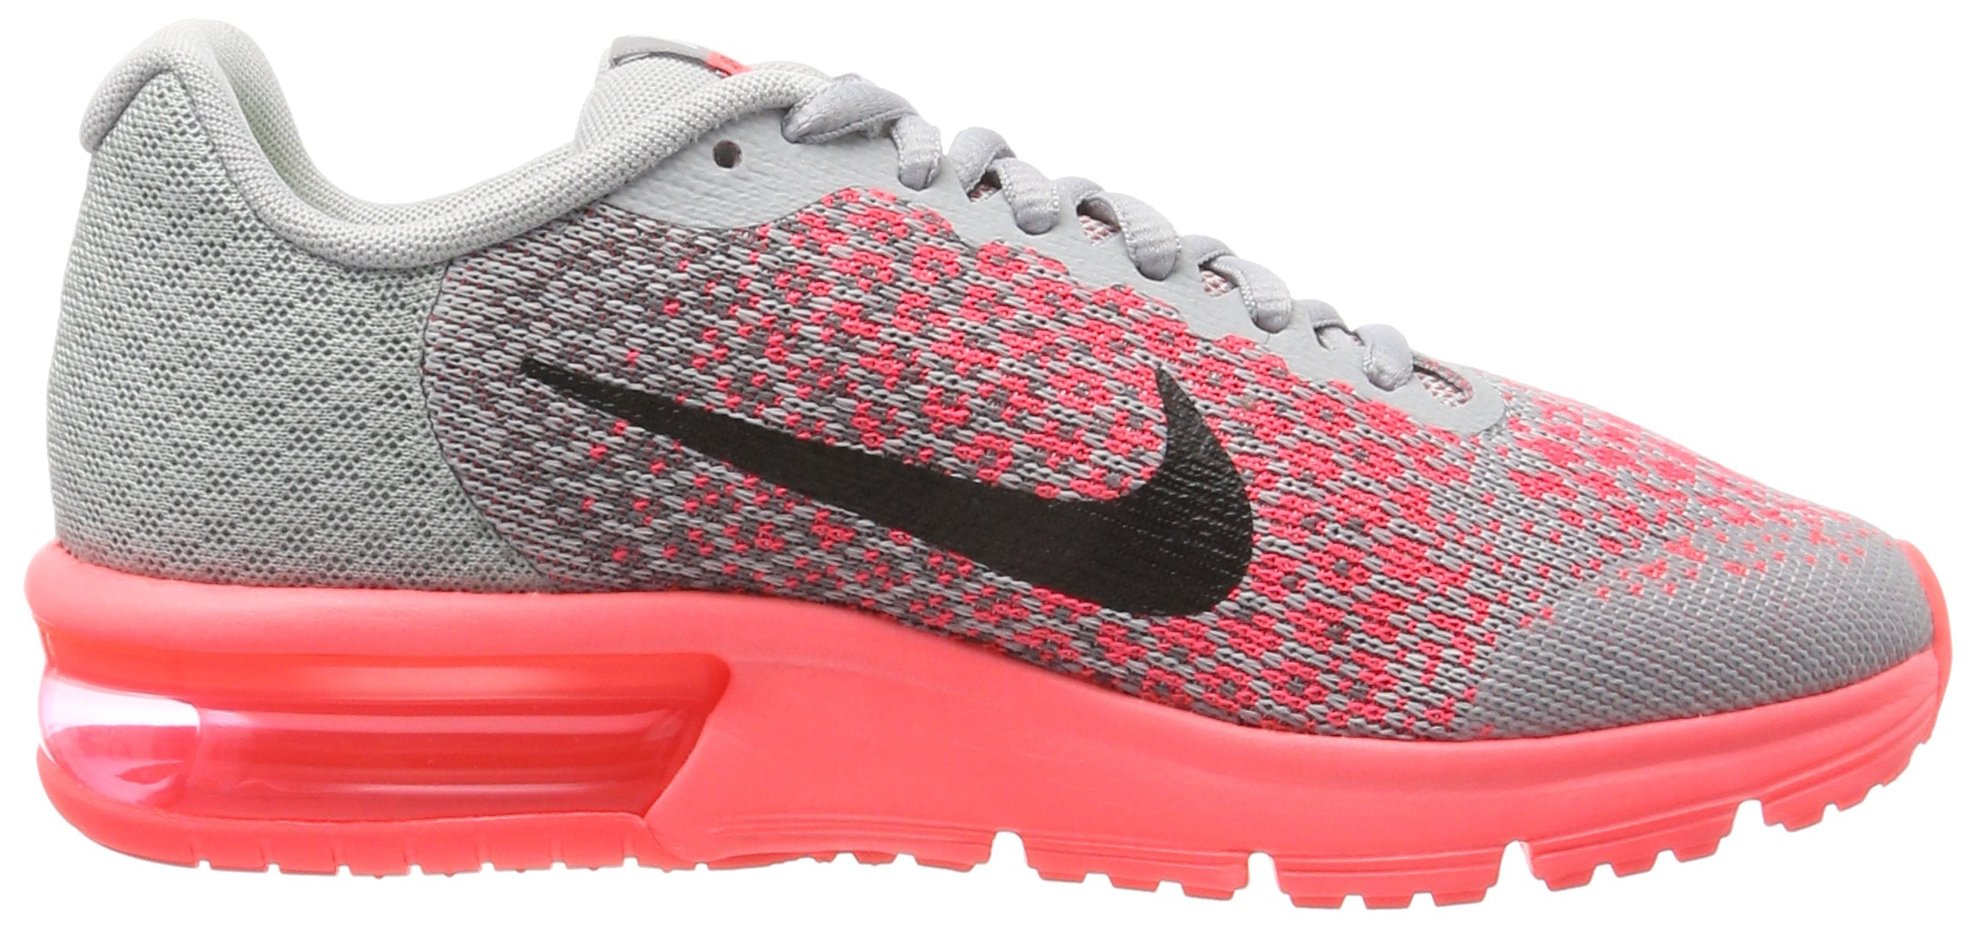 NIKE Air Max Sequent 2 Big Kids Style : 869994 by Nike (Image #6)